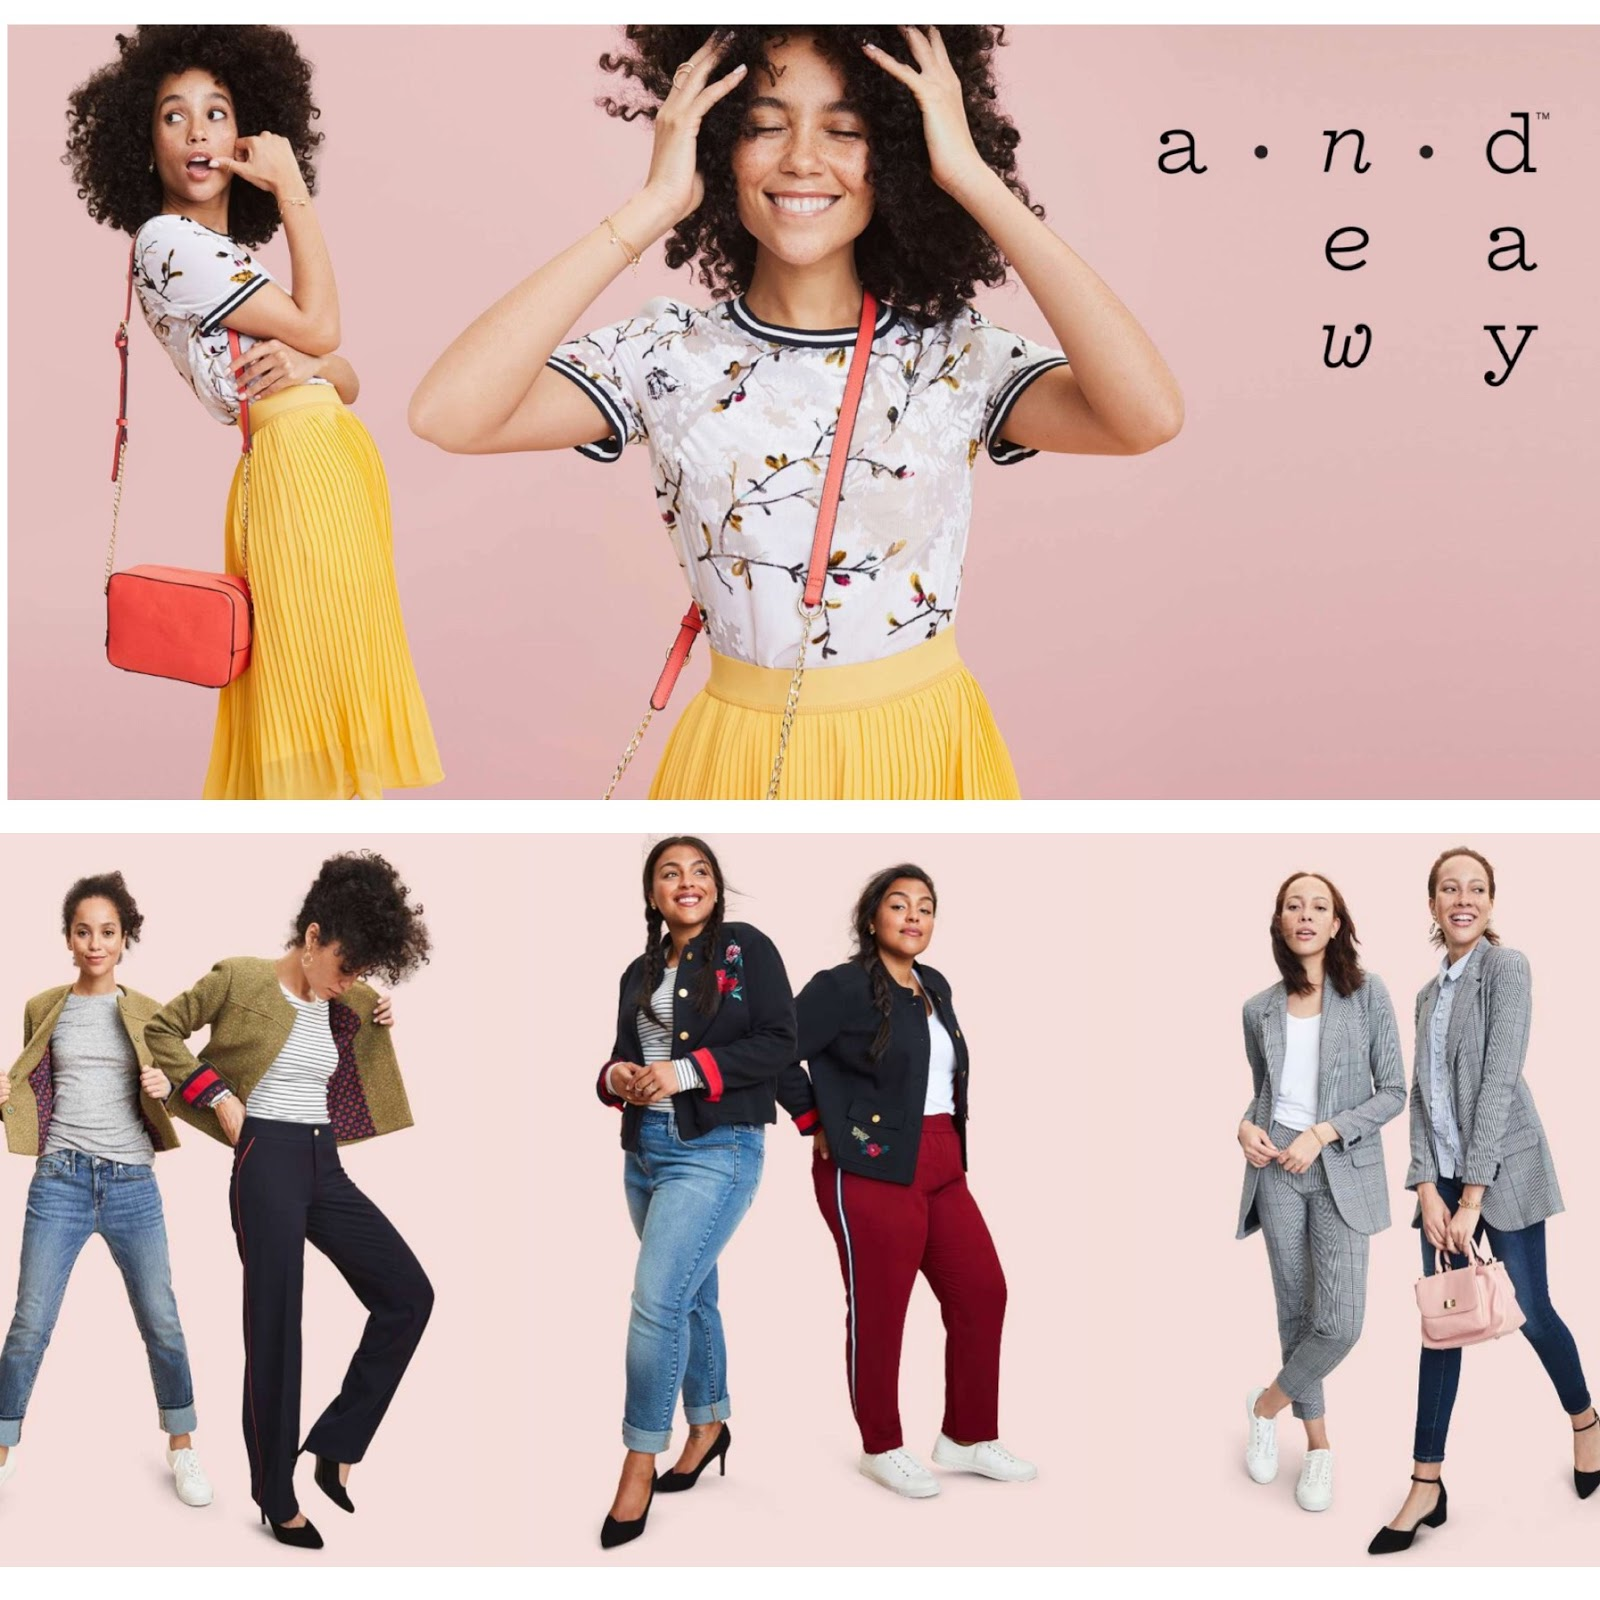 New Brands At Target: A New Day